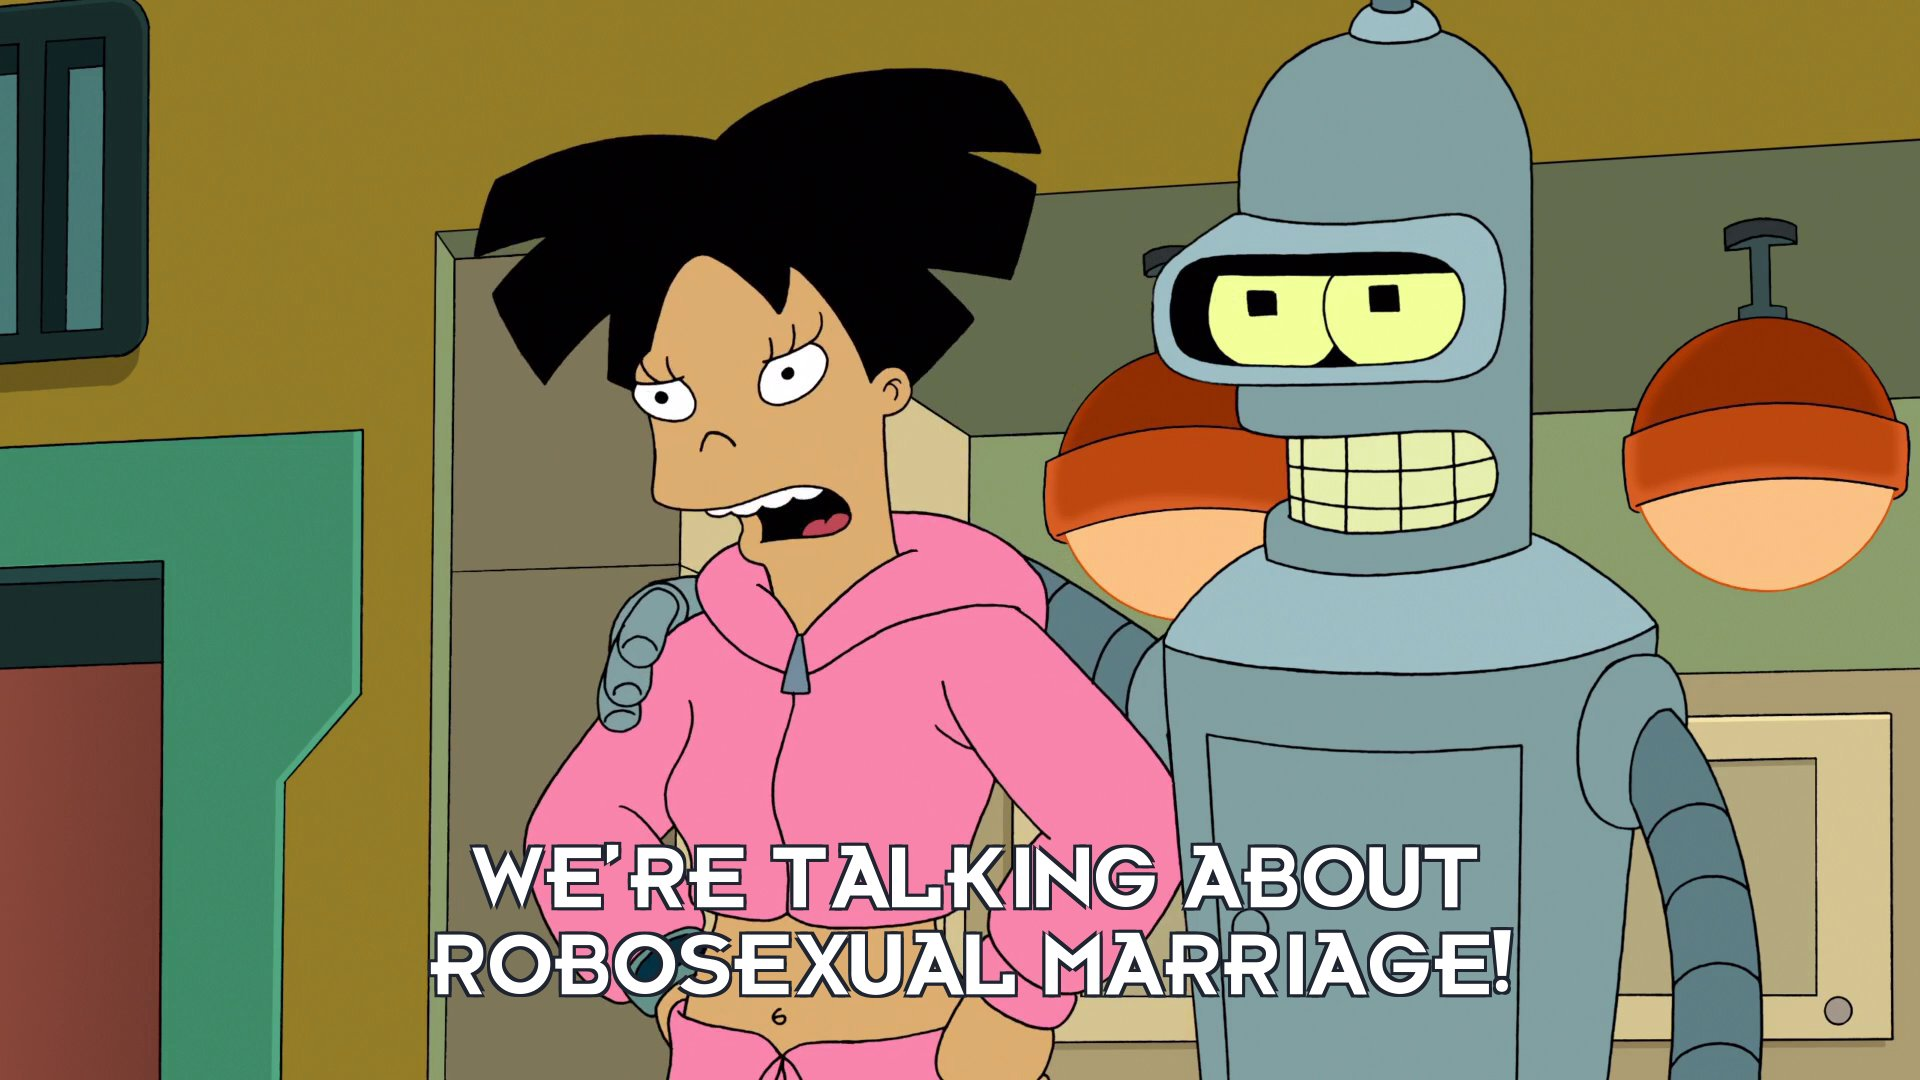 Amy Wong: We're talking about robosexual marriage!